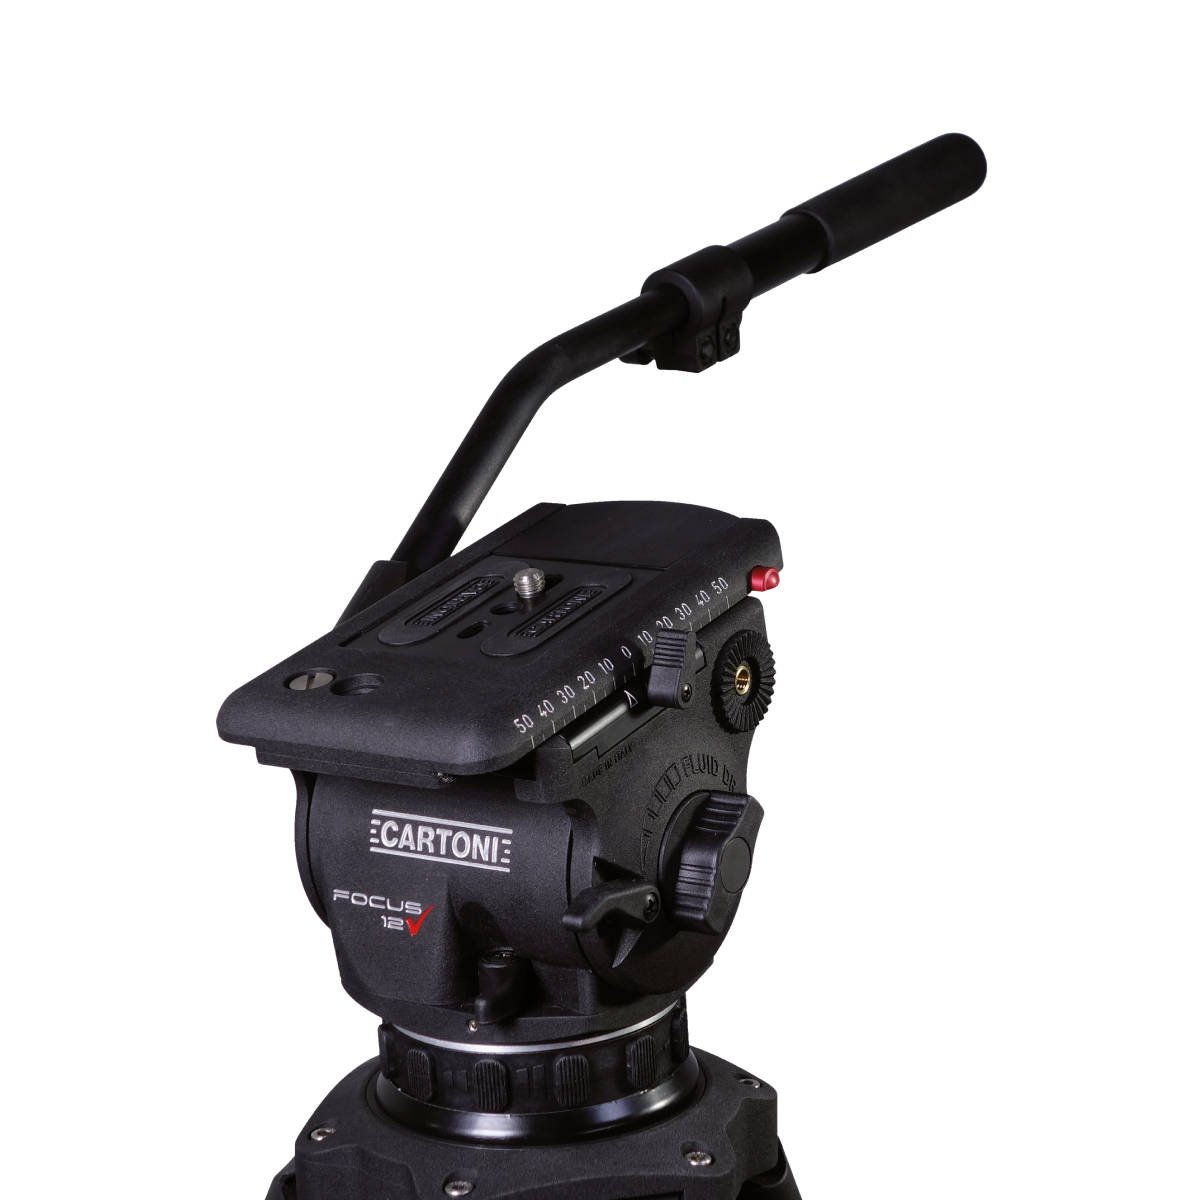 Focus Head with Quick Release Plate, with Pan Bar, 0-26lbs